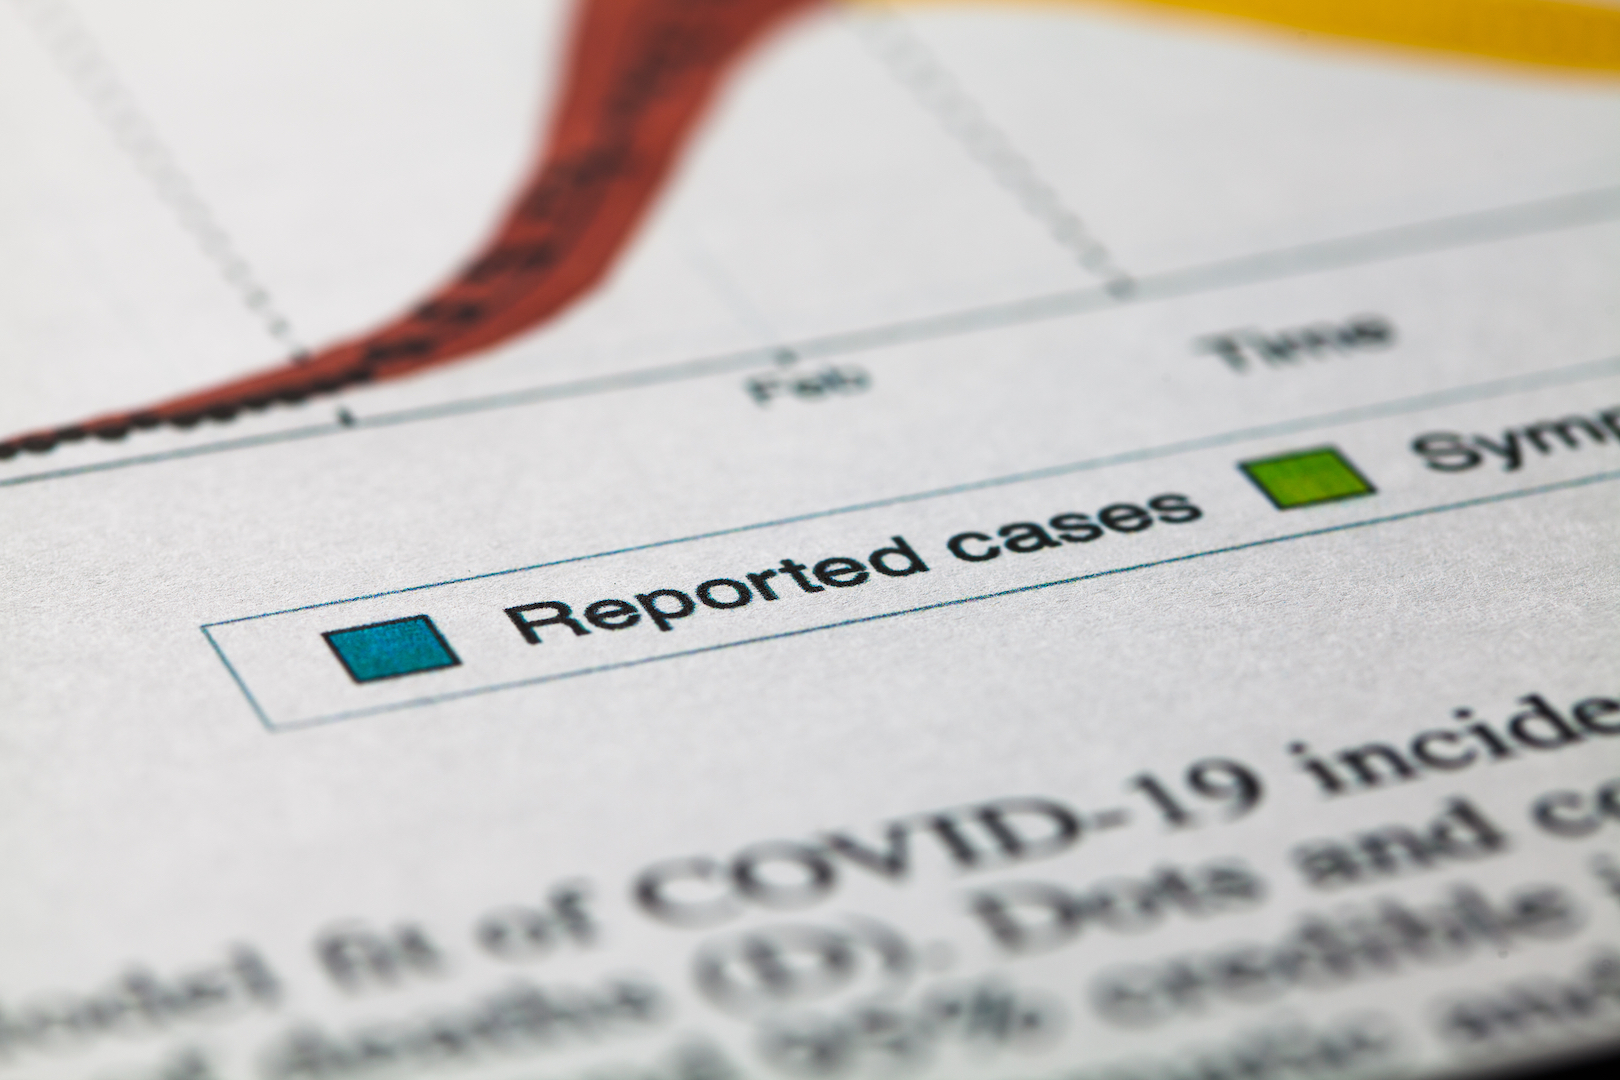 1st COVID-19 case in US reported a year ago